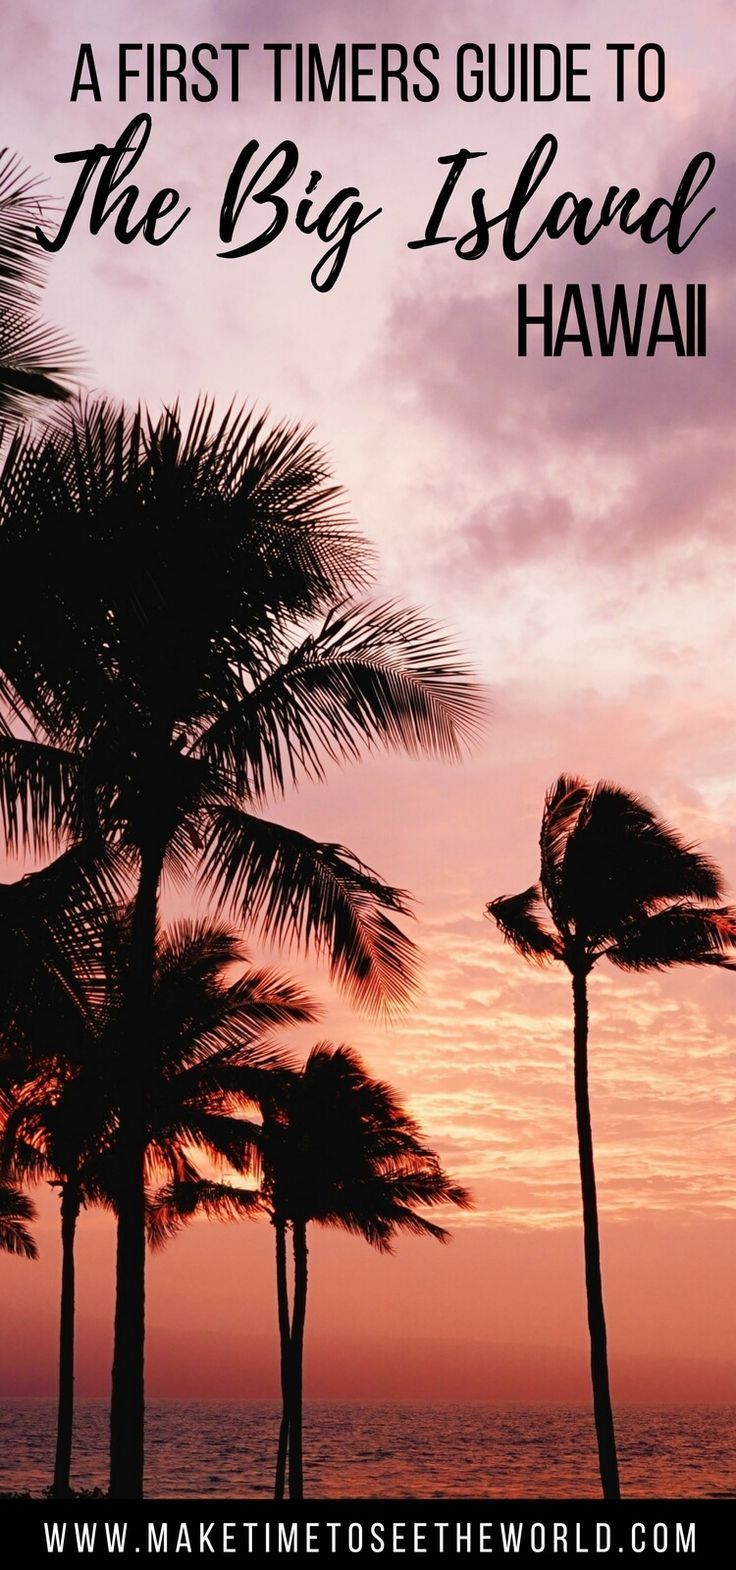 First Time to Hawaii? Top Things To Do on the Big Island